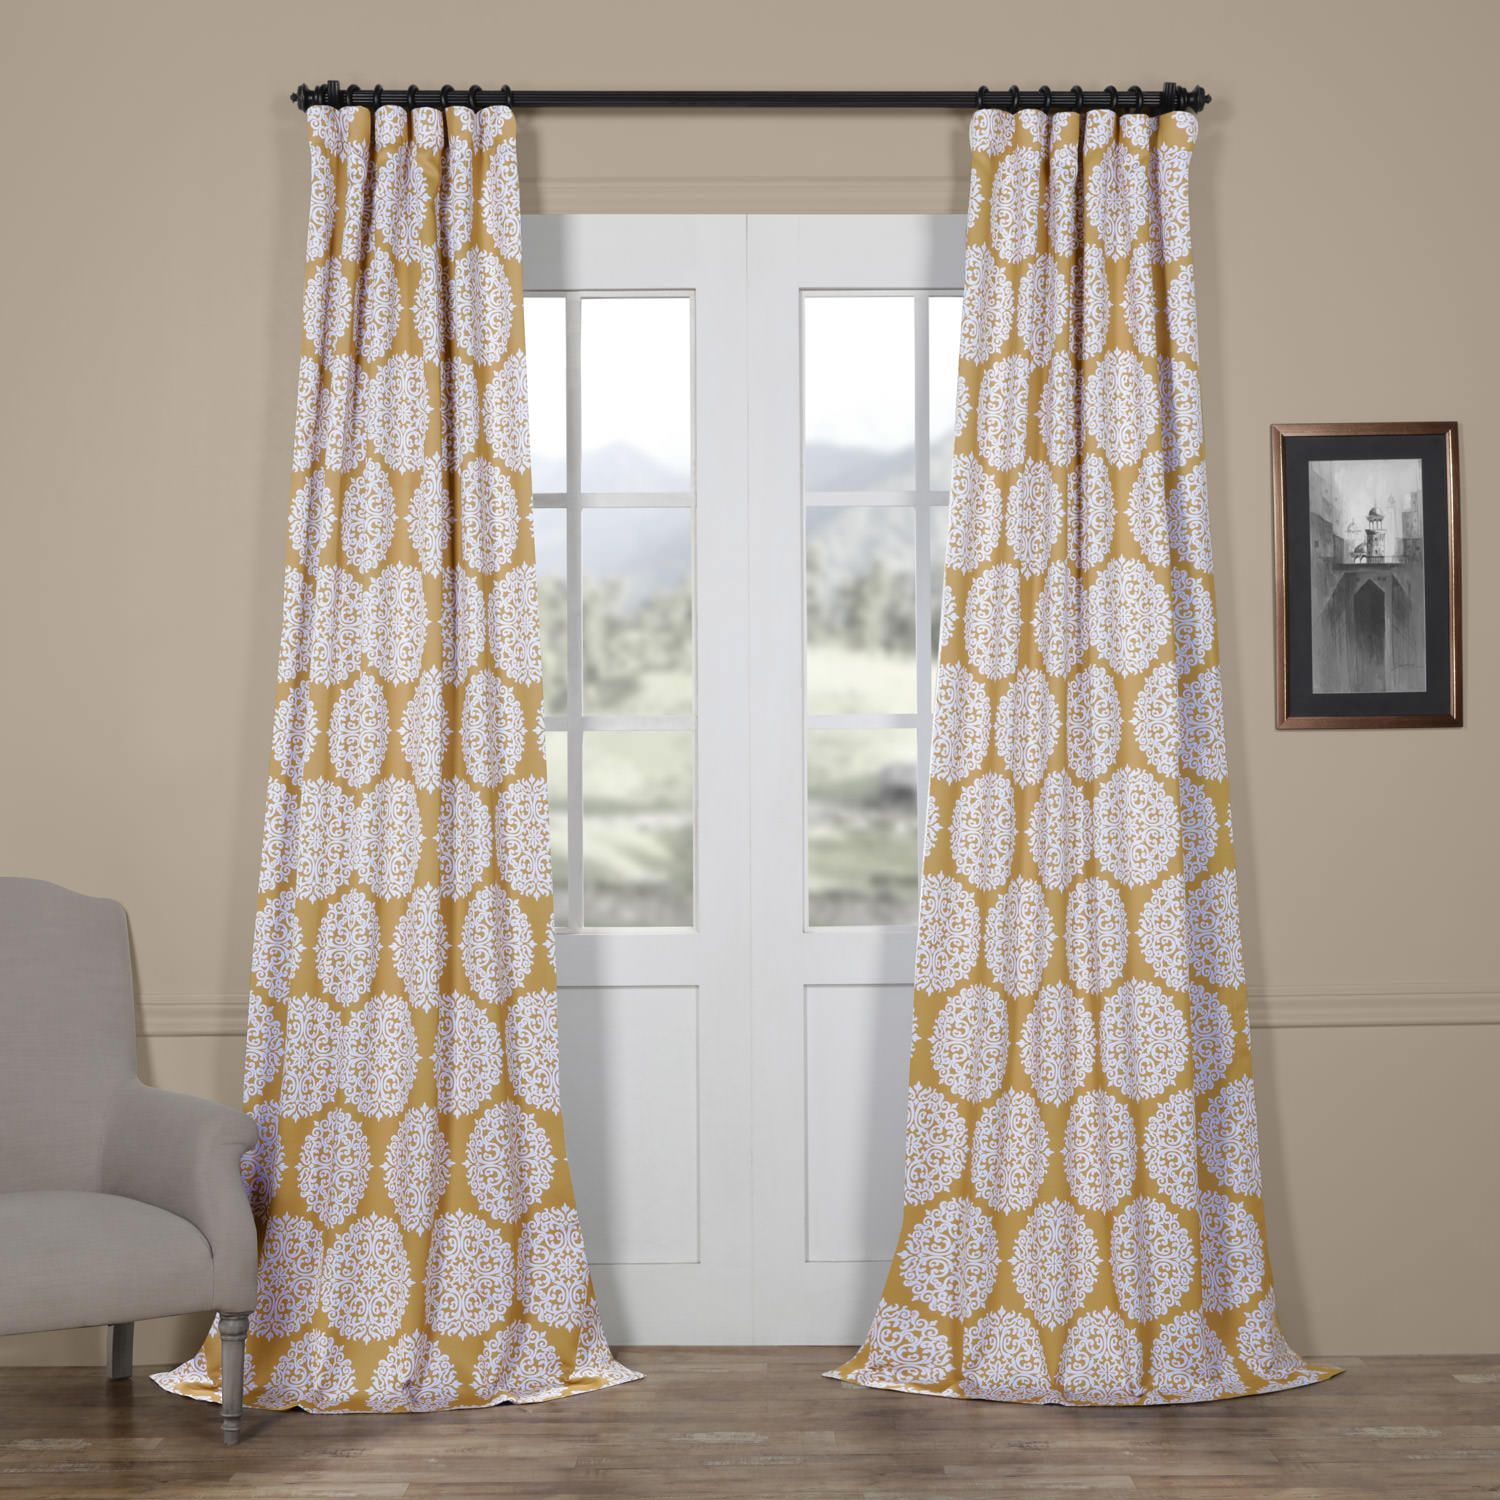 under ideas modern and com mauve dollclique color cream cotton gray gold room windows country polyester plaid tartan curtains orange chair blackout living grey source black yellow